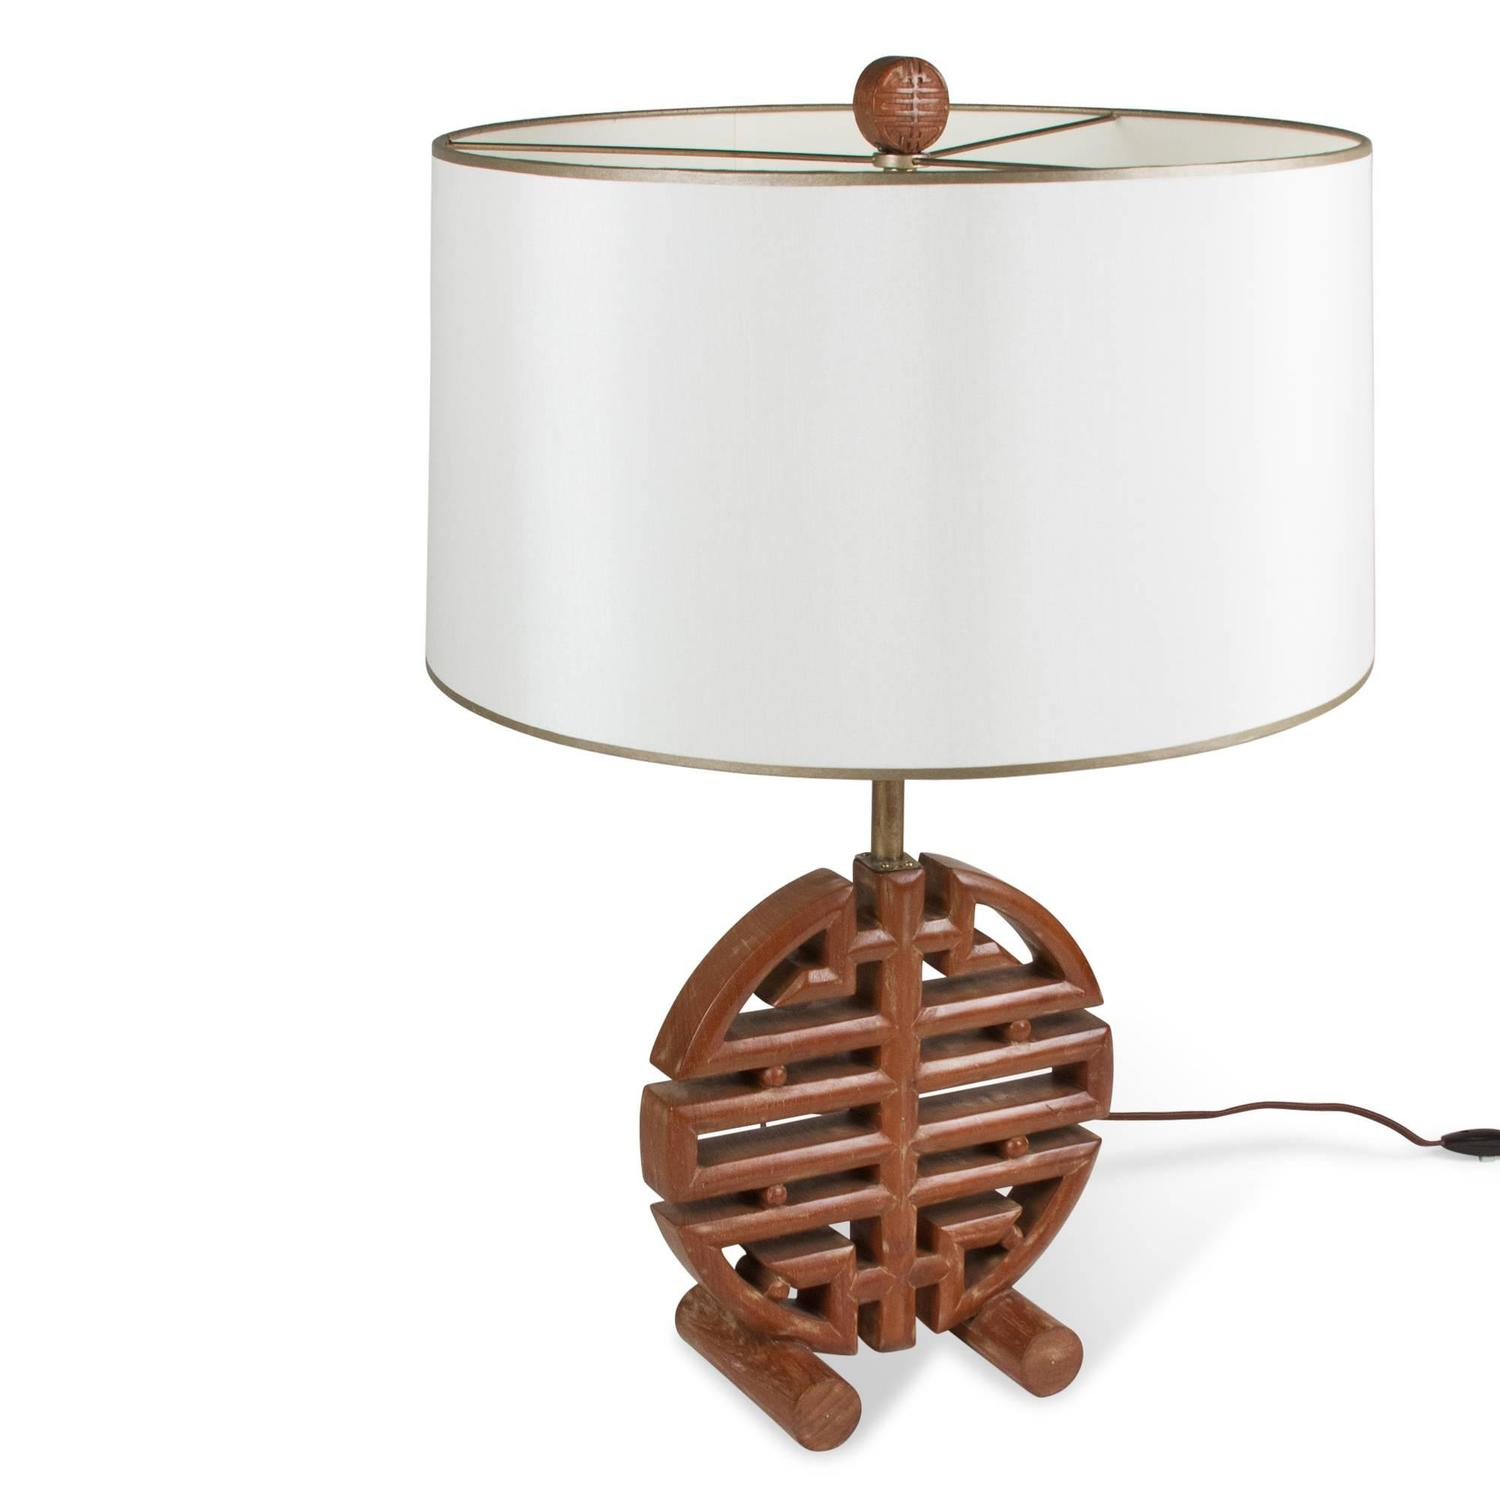 james mont style geometric wood table lamp for sale at 1stdibs. Black Bedroom Furniture Sets. Home Design Ideas